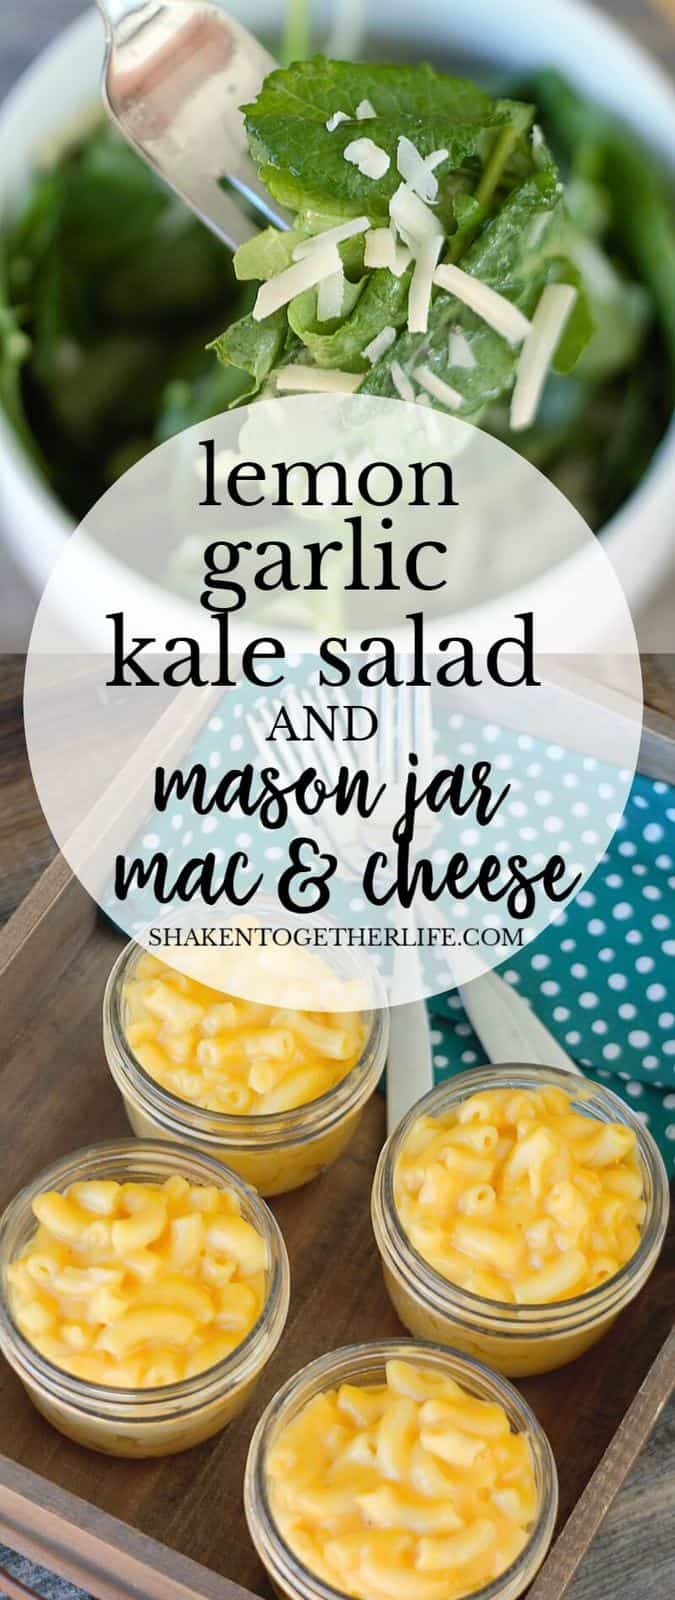 Lemon Garlic Kale Salad is the perfect partner for Mason Jar Mac & Cheese - this is a weeknight dinner win!